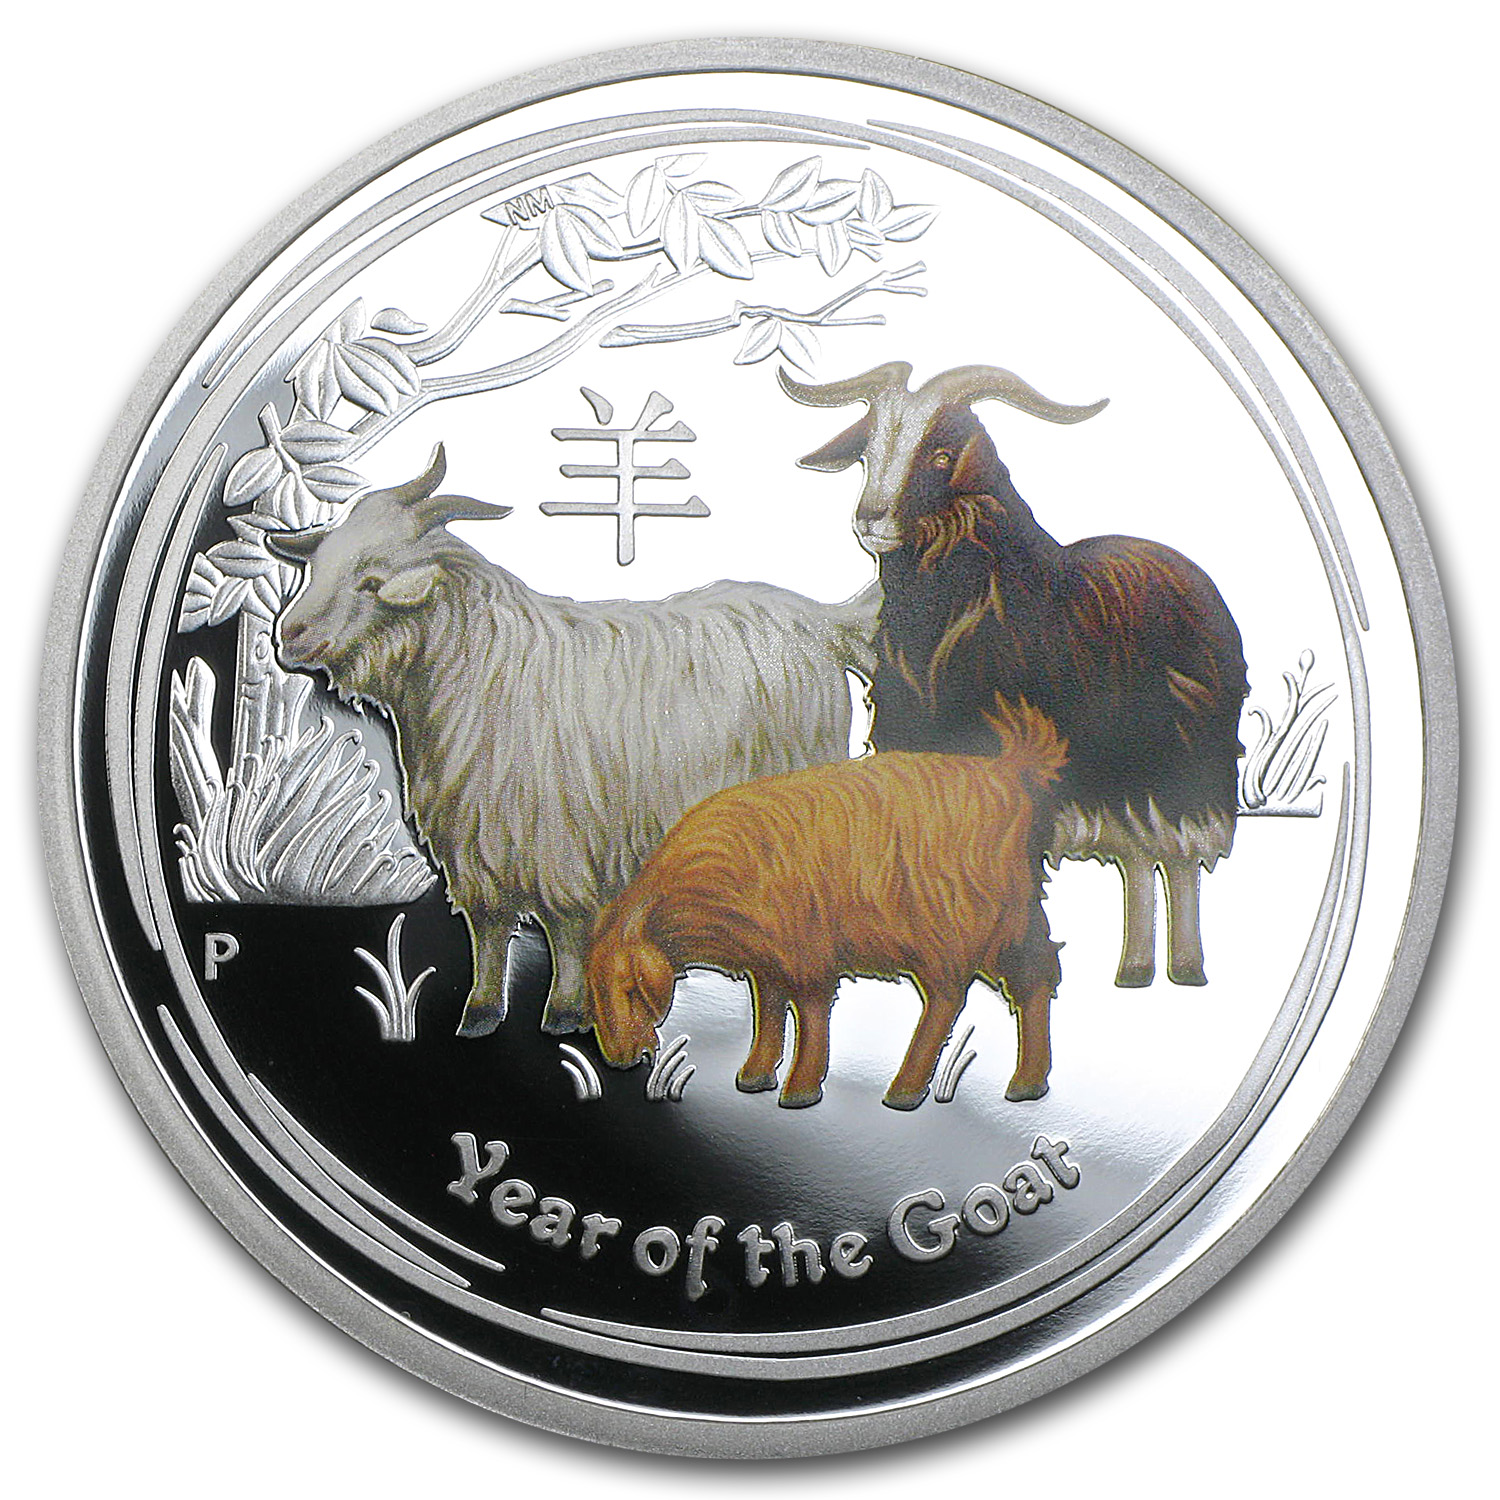 2015 Australia 2 oz Silver Lunar Goat Colorized Proof (ANDA)